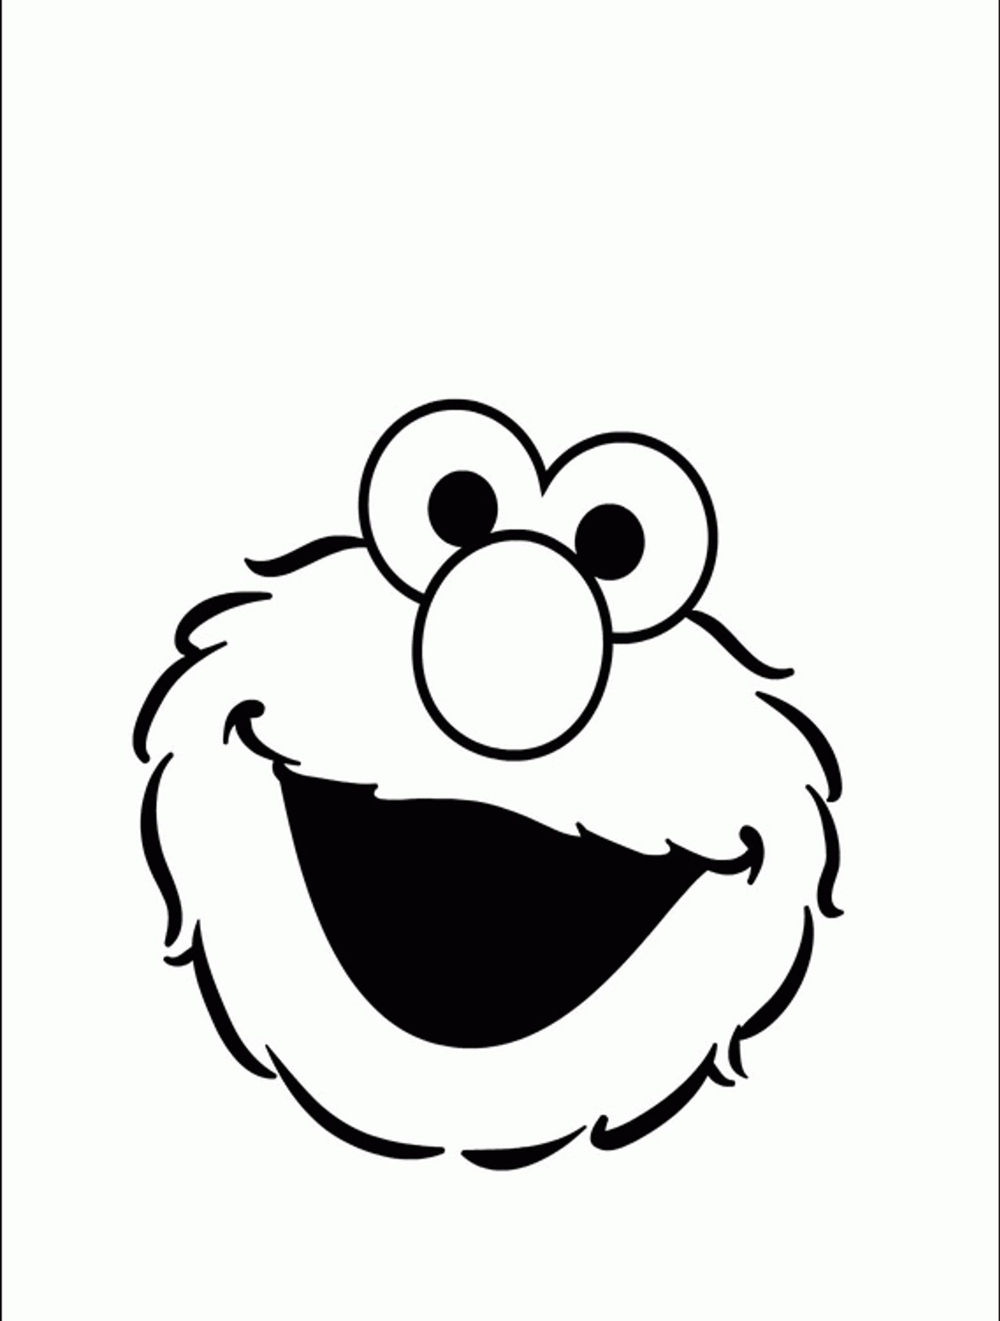 face of elmo colouring in pages to print - Cookie Monster Face Coloring Pages